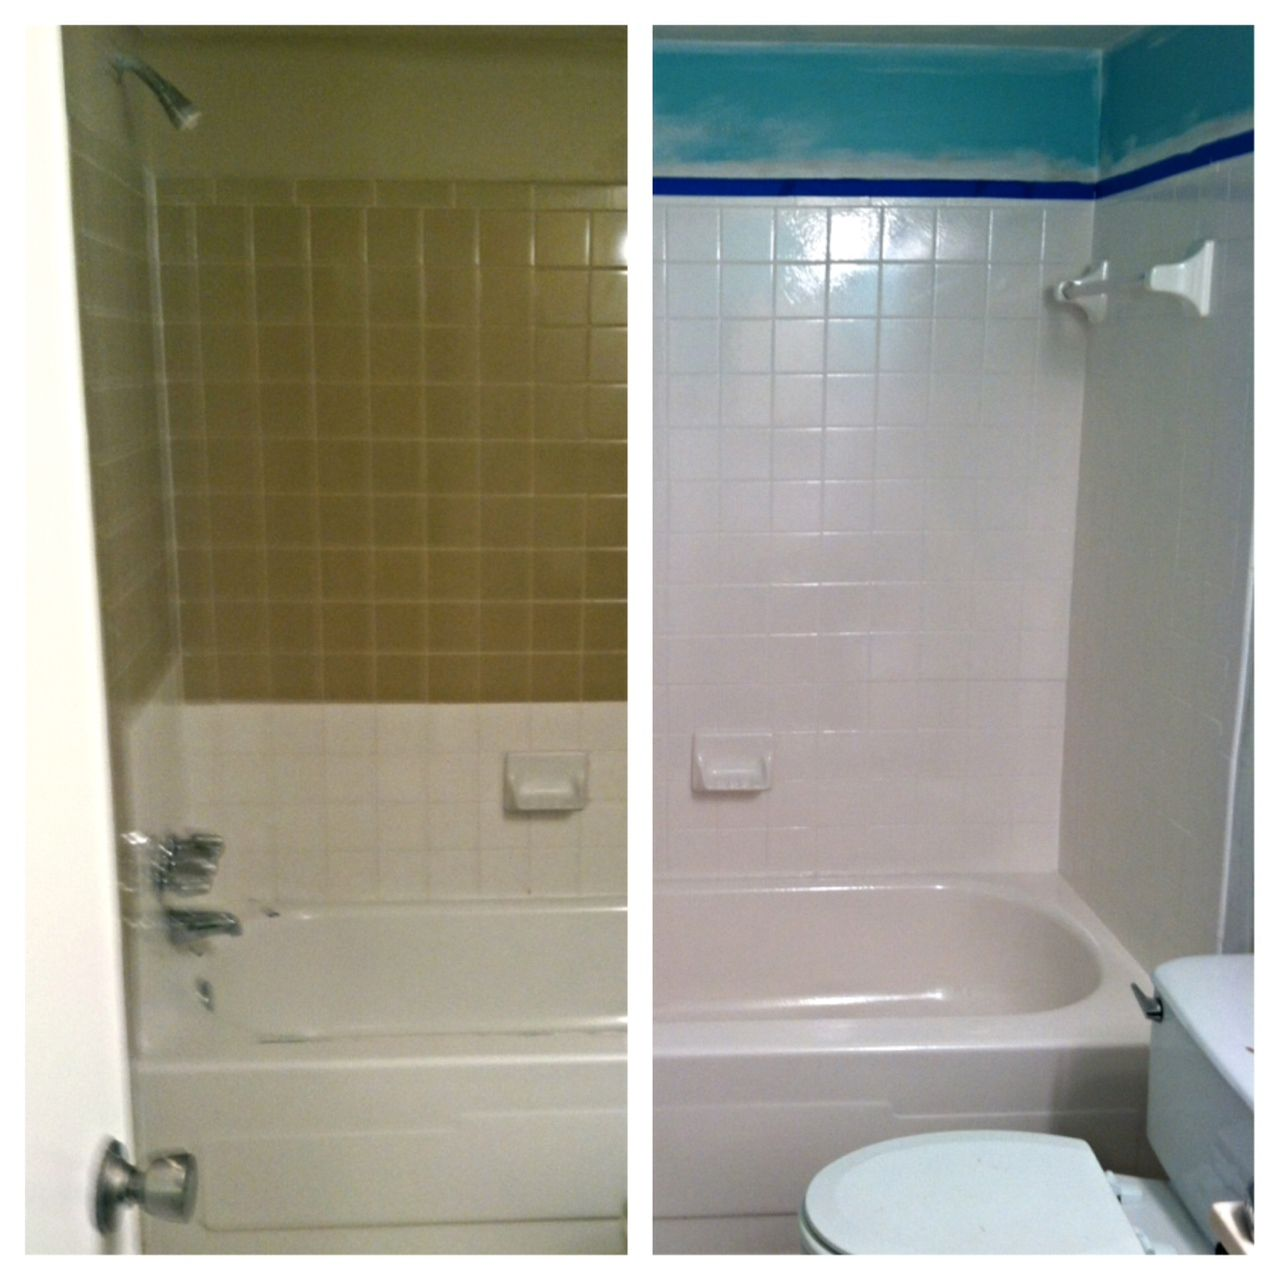 As I mentioned briefly in the Rehabbing a Bad Bathroom post; the tub ...